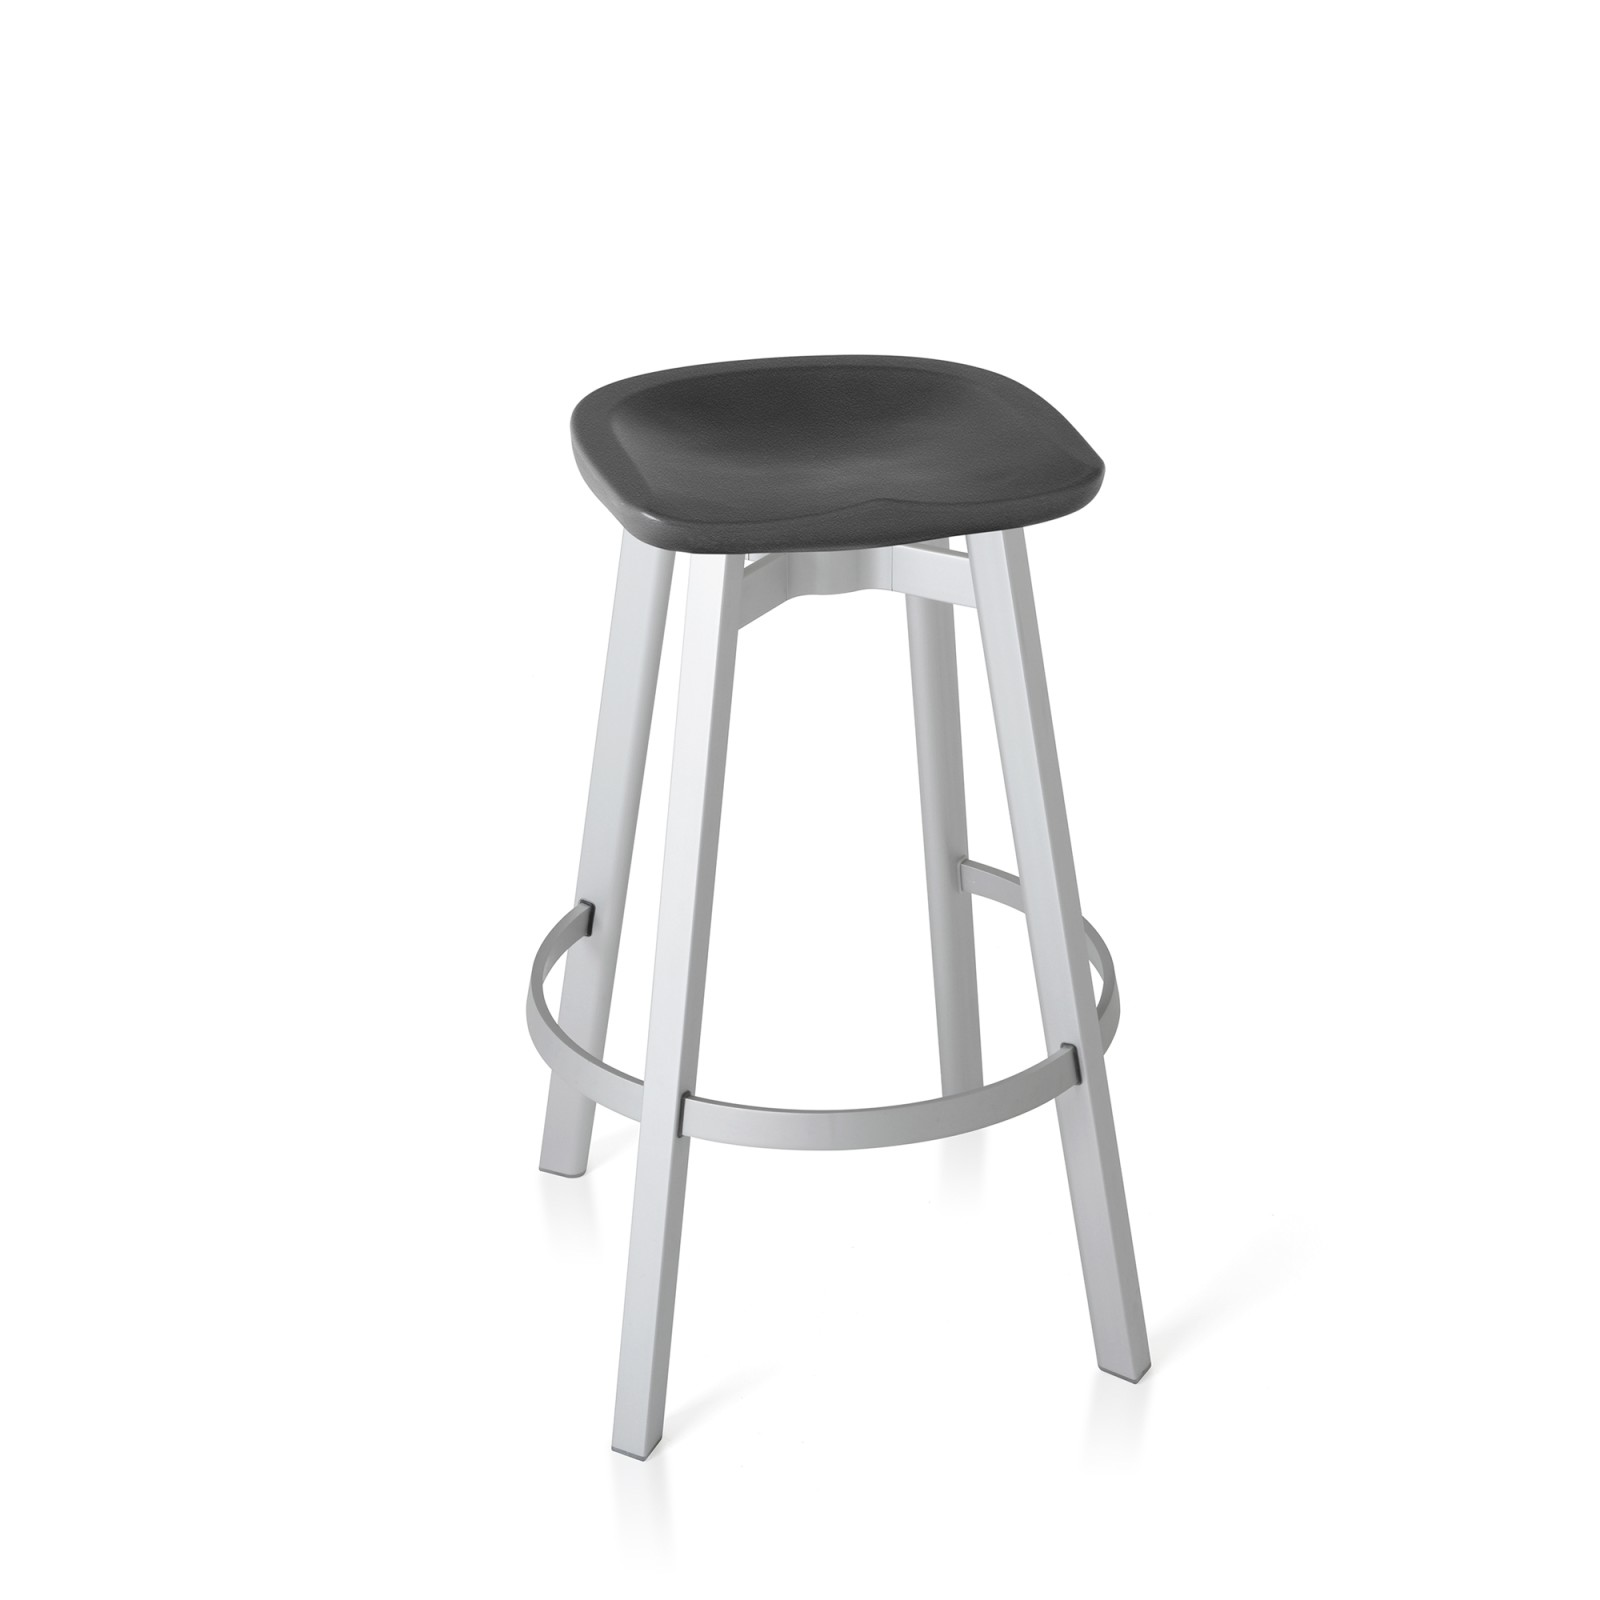 Su Bar Stool Aluminium, Charcoal